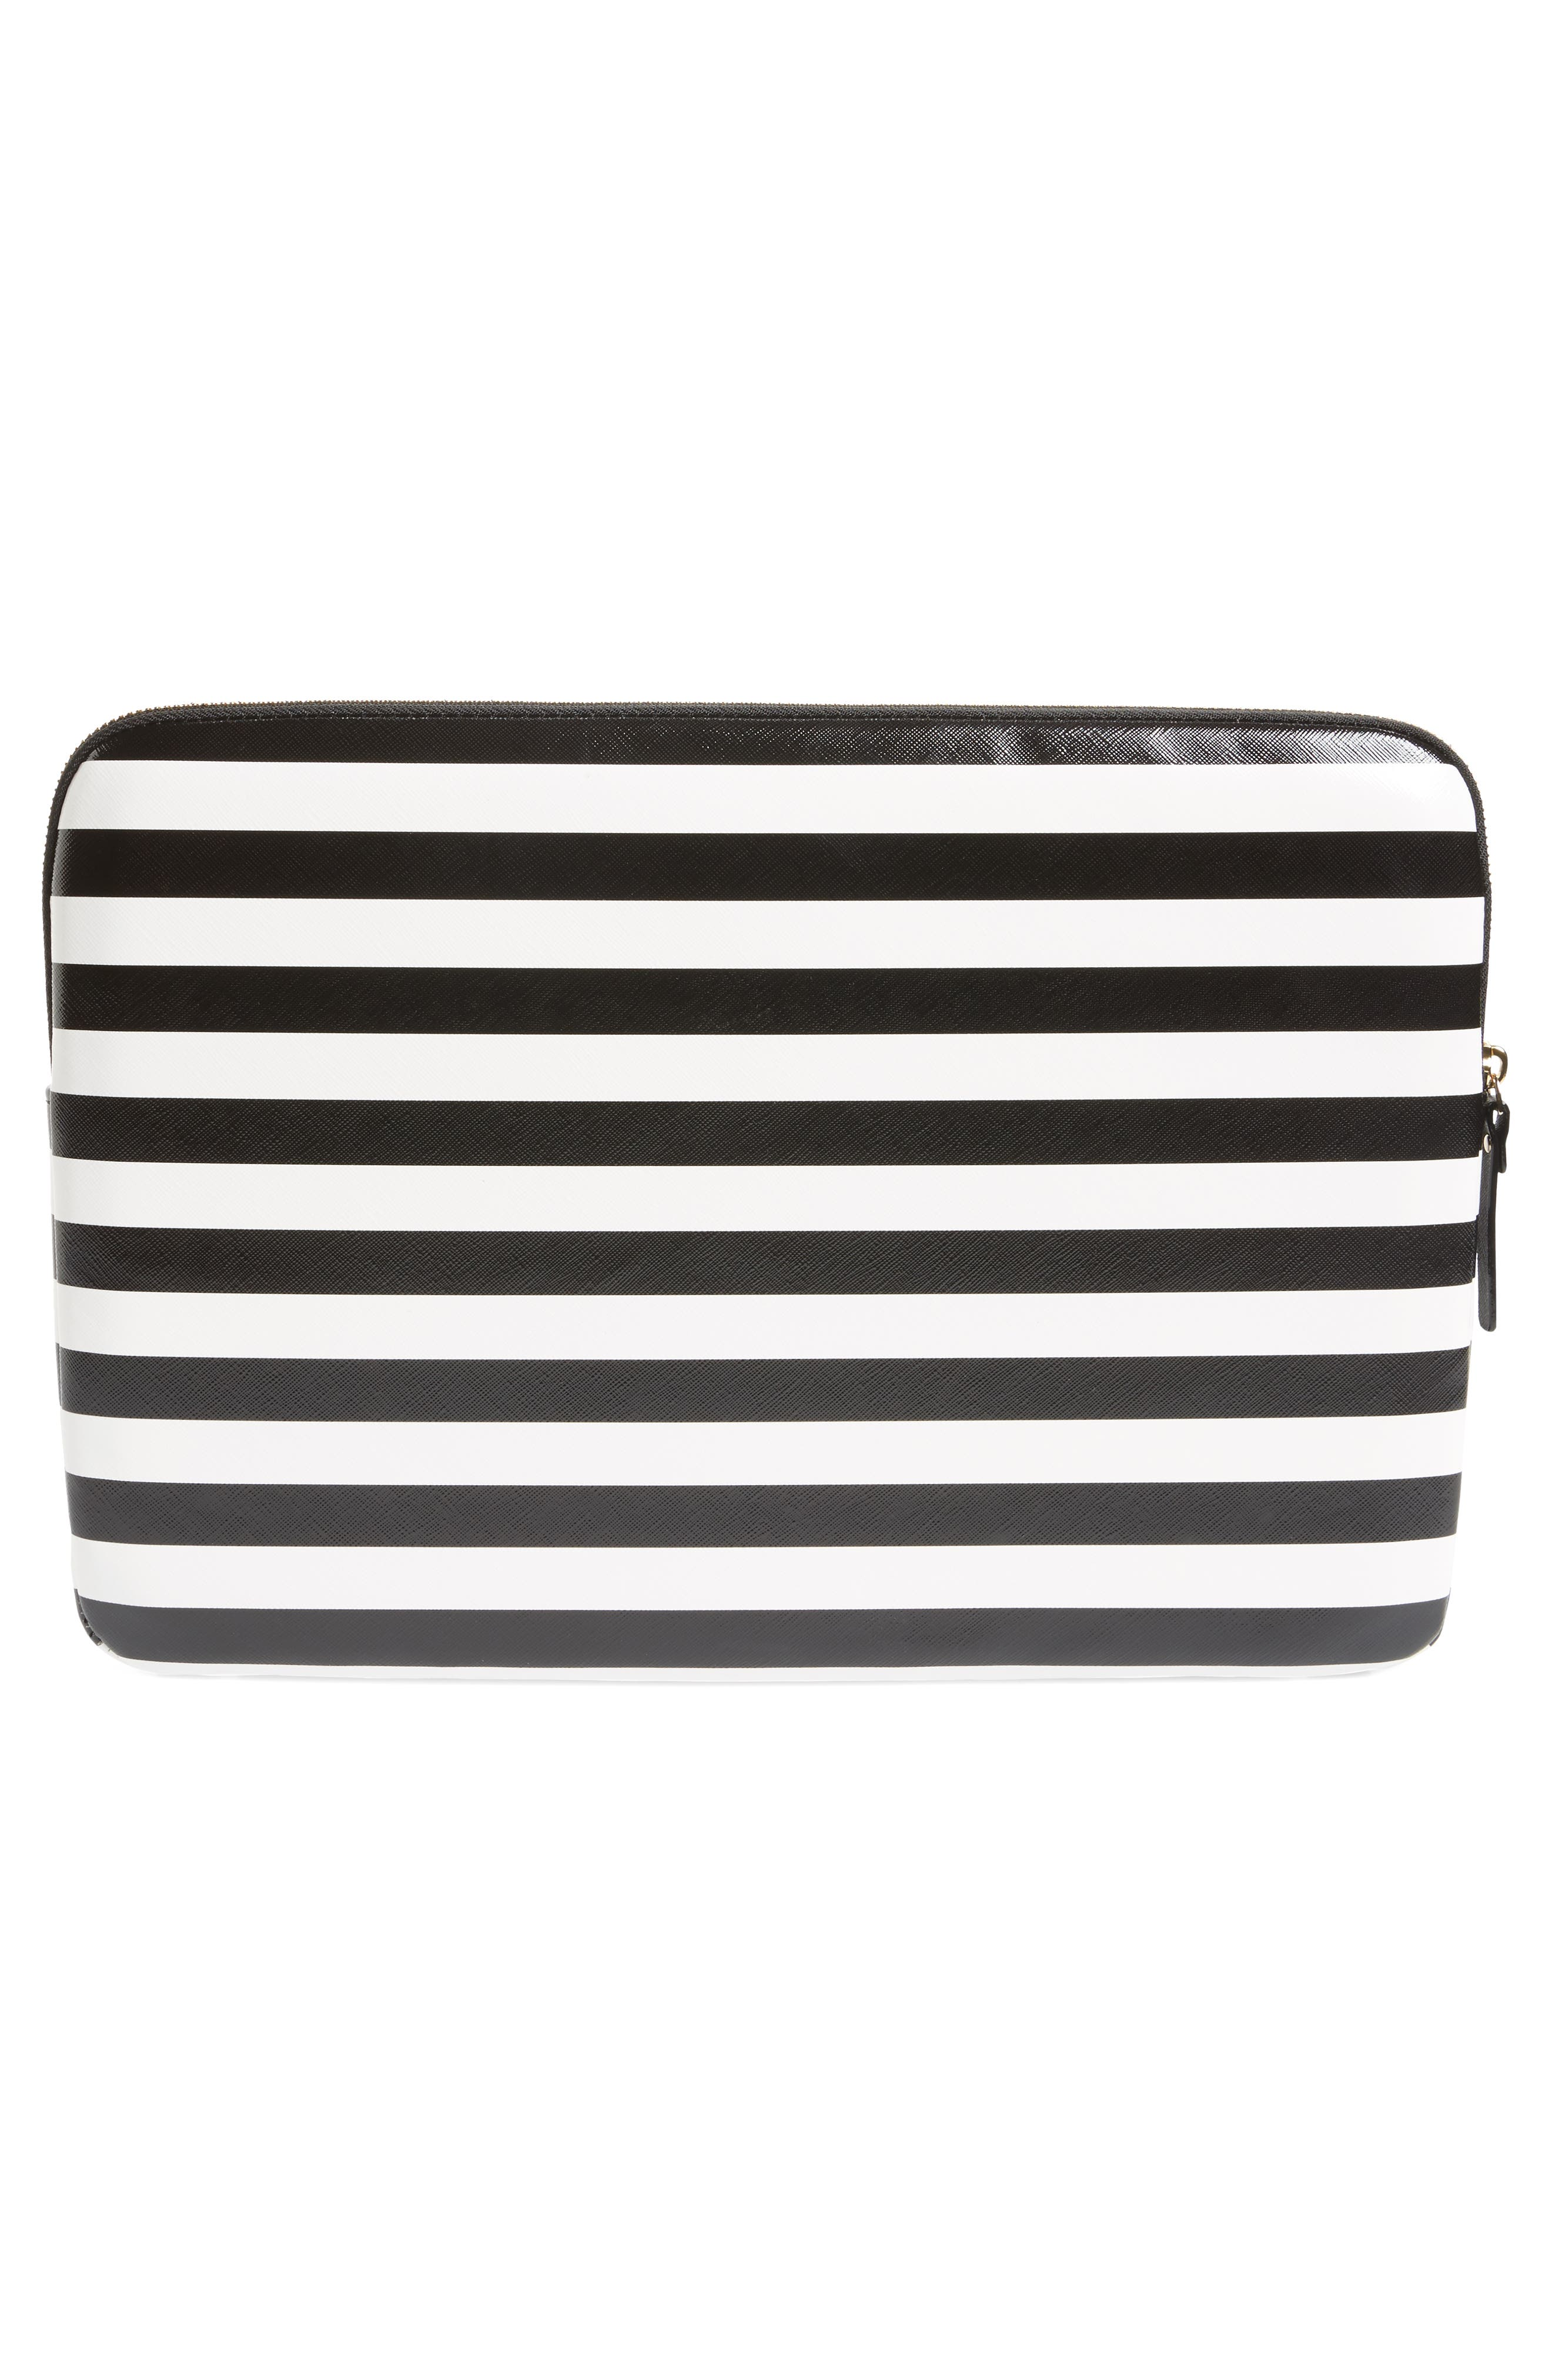 stripe universal laptop sleeve,                             Alternate thumbnail 4, color,                             017